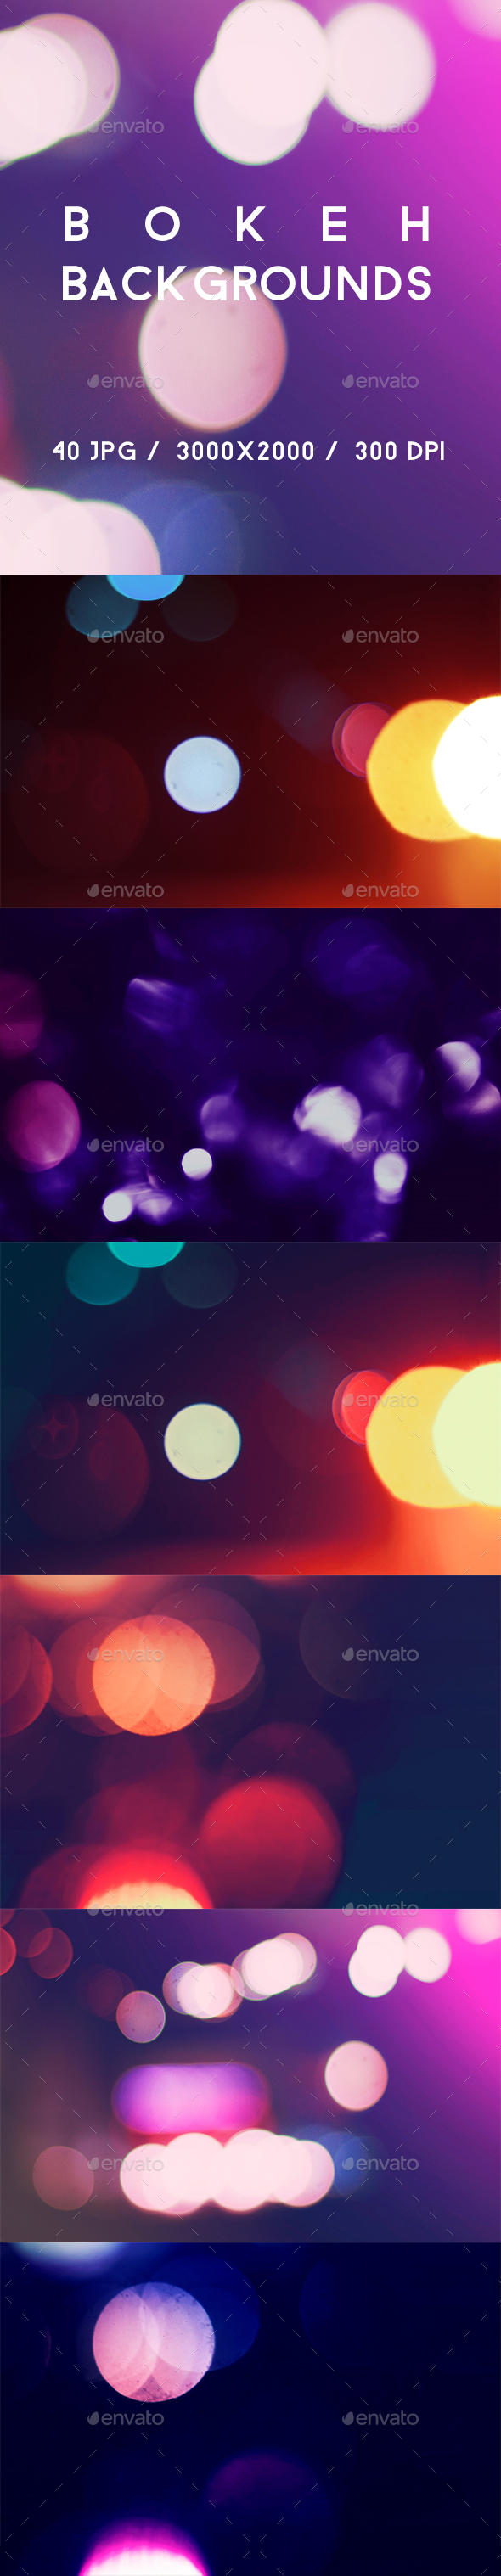 40 Bokeh Backgrounds - Abstract Backgrounds